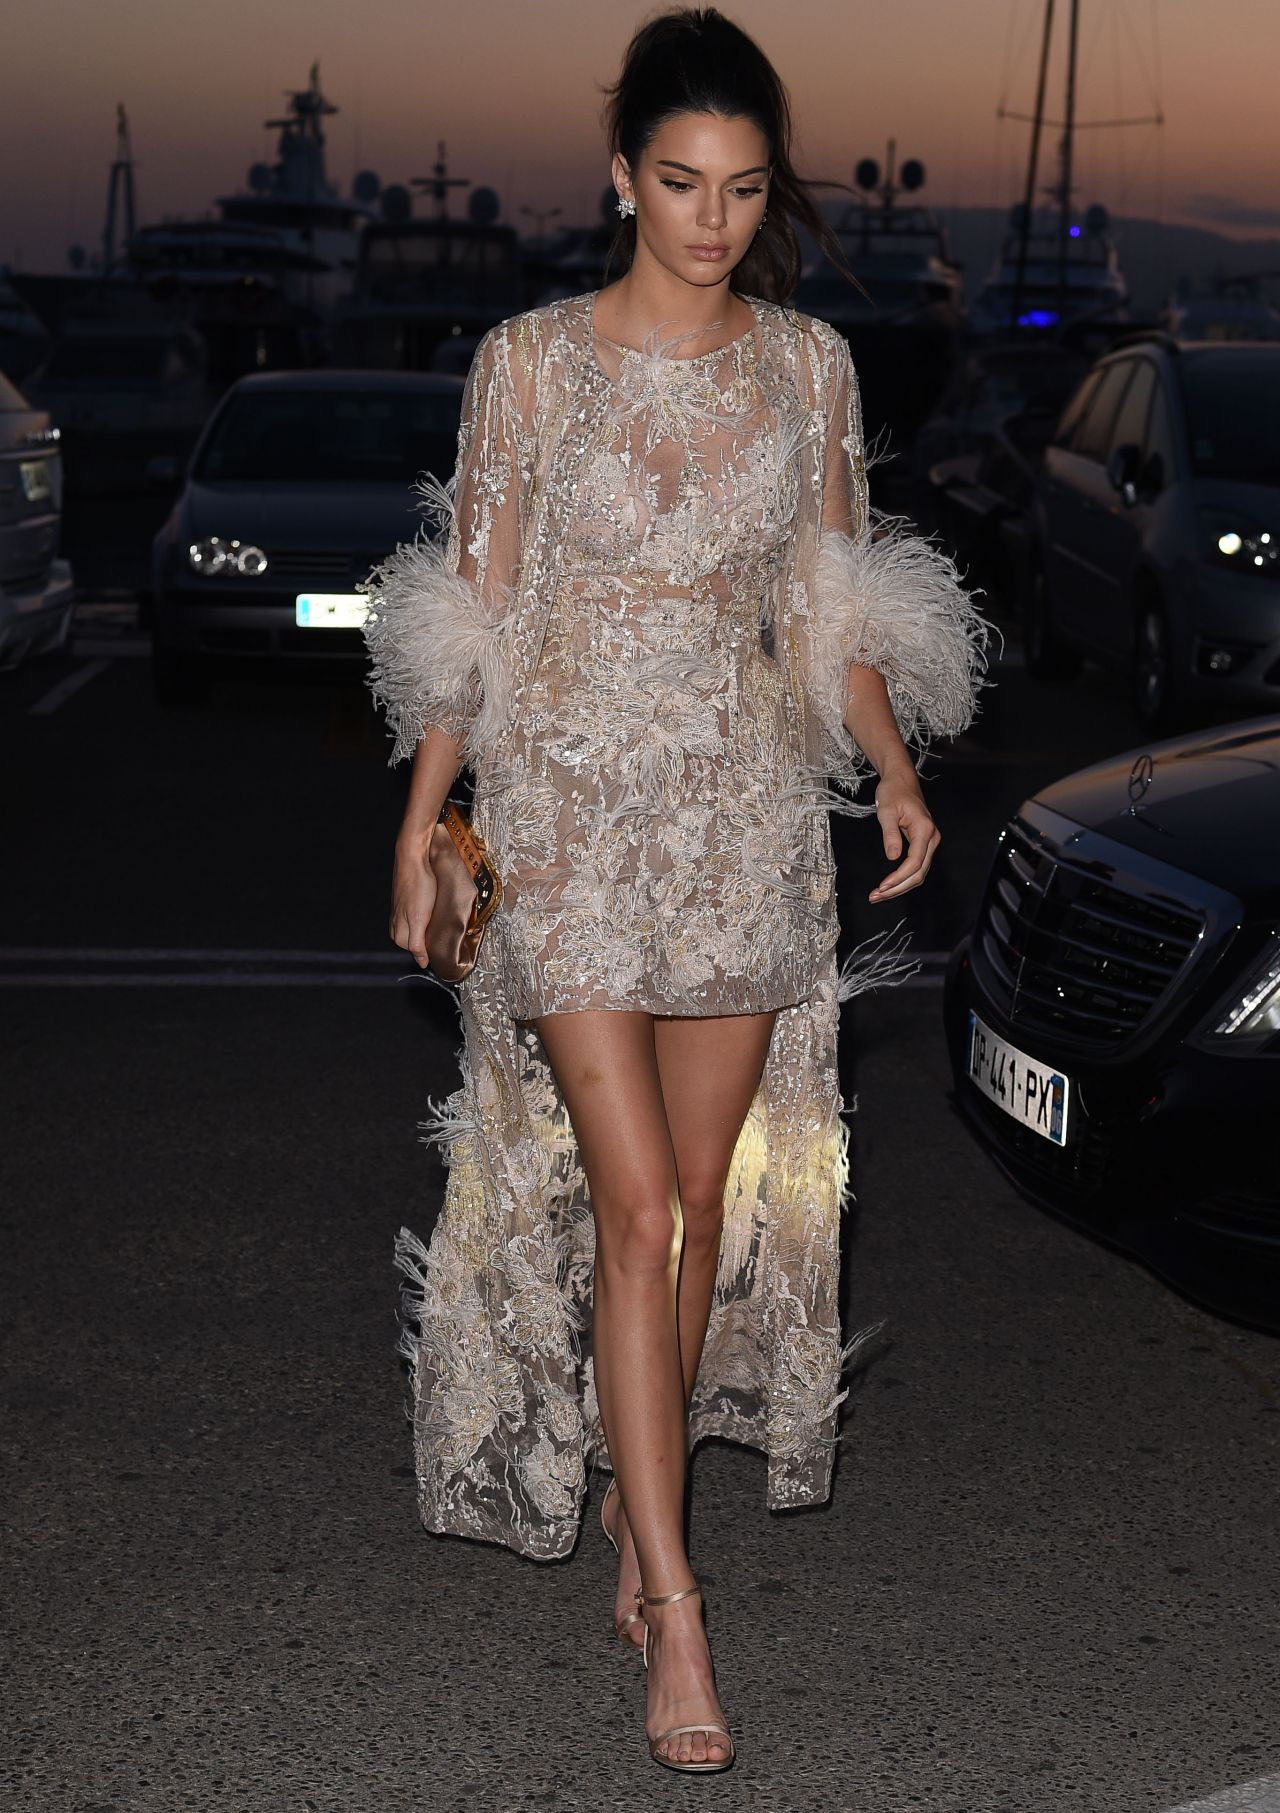 Kendall Jenner - The Chopard Dinner at Baoli Beach in Cannes France 5/16/2016